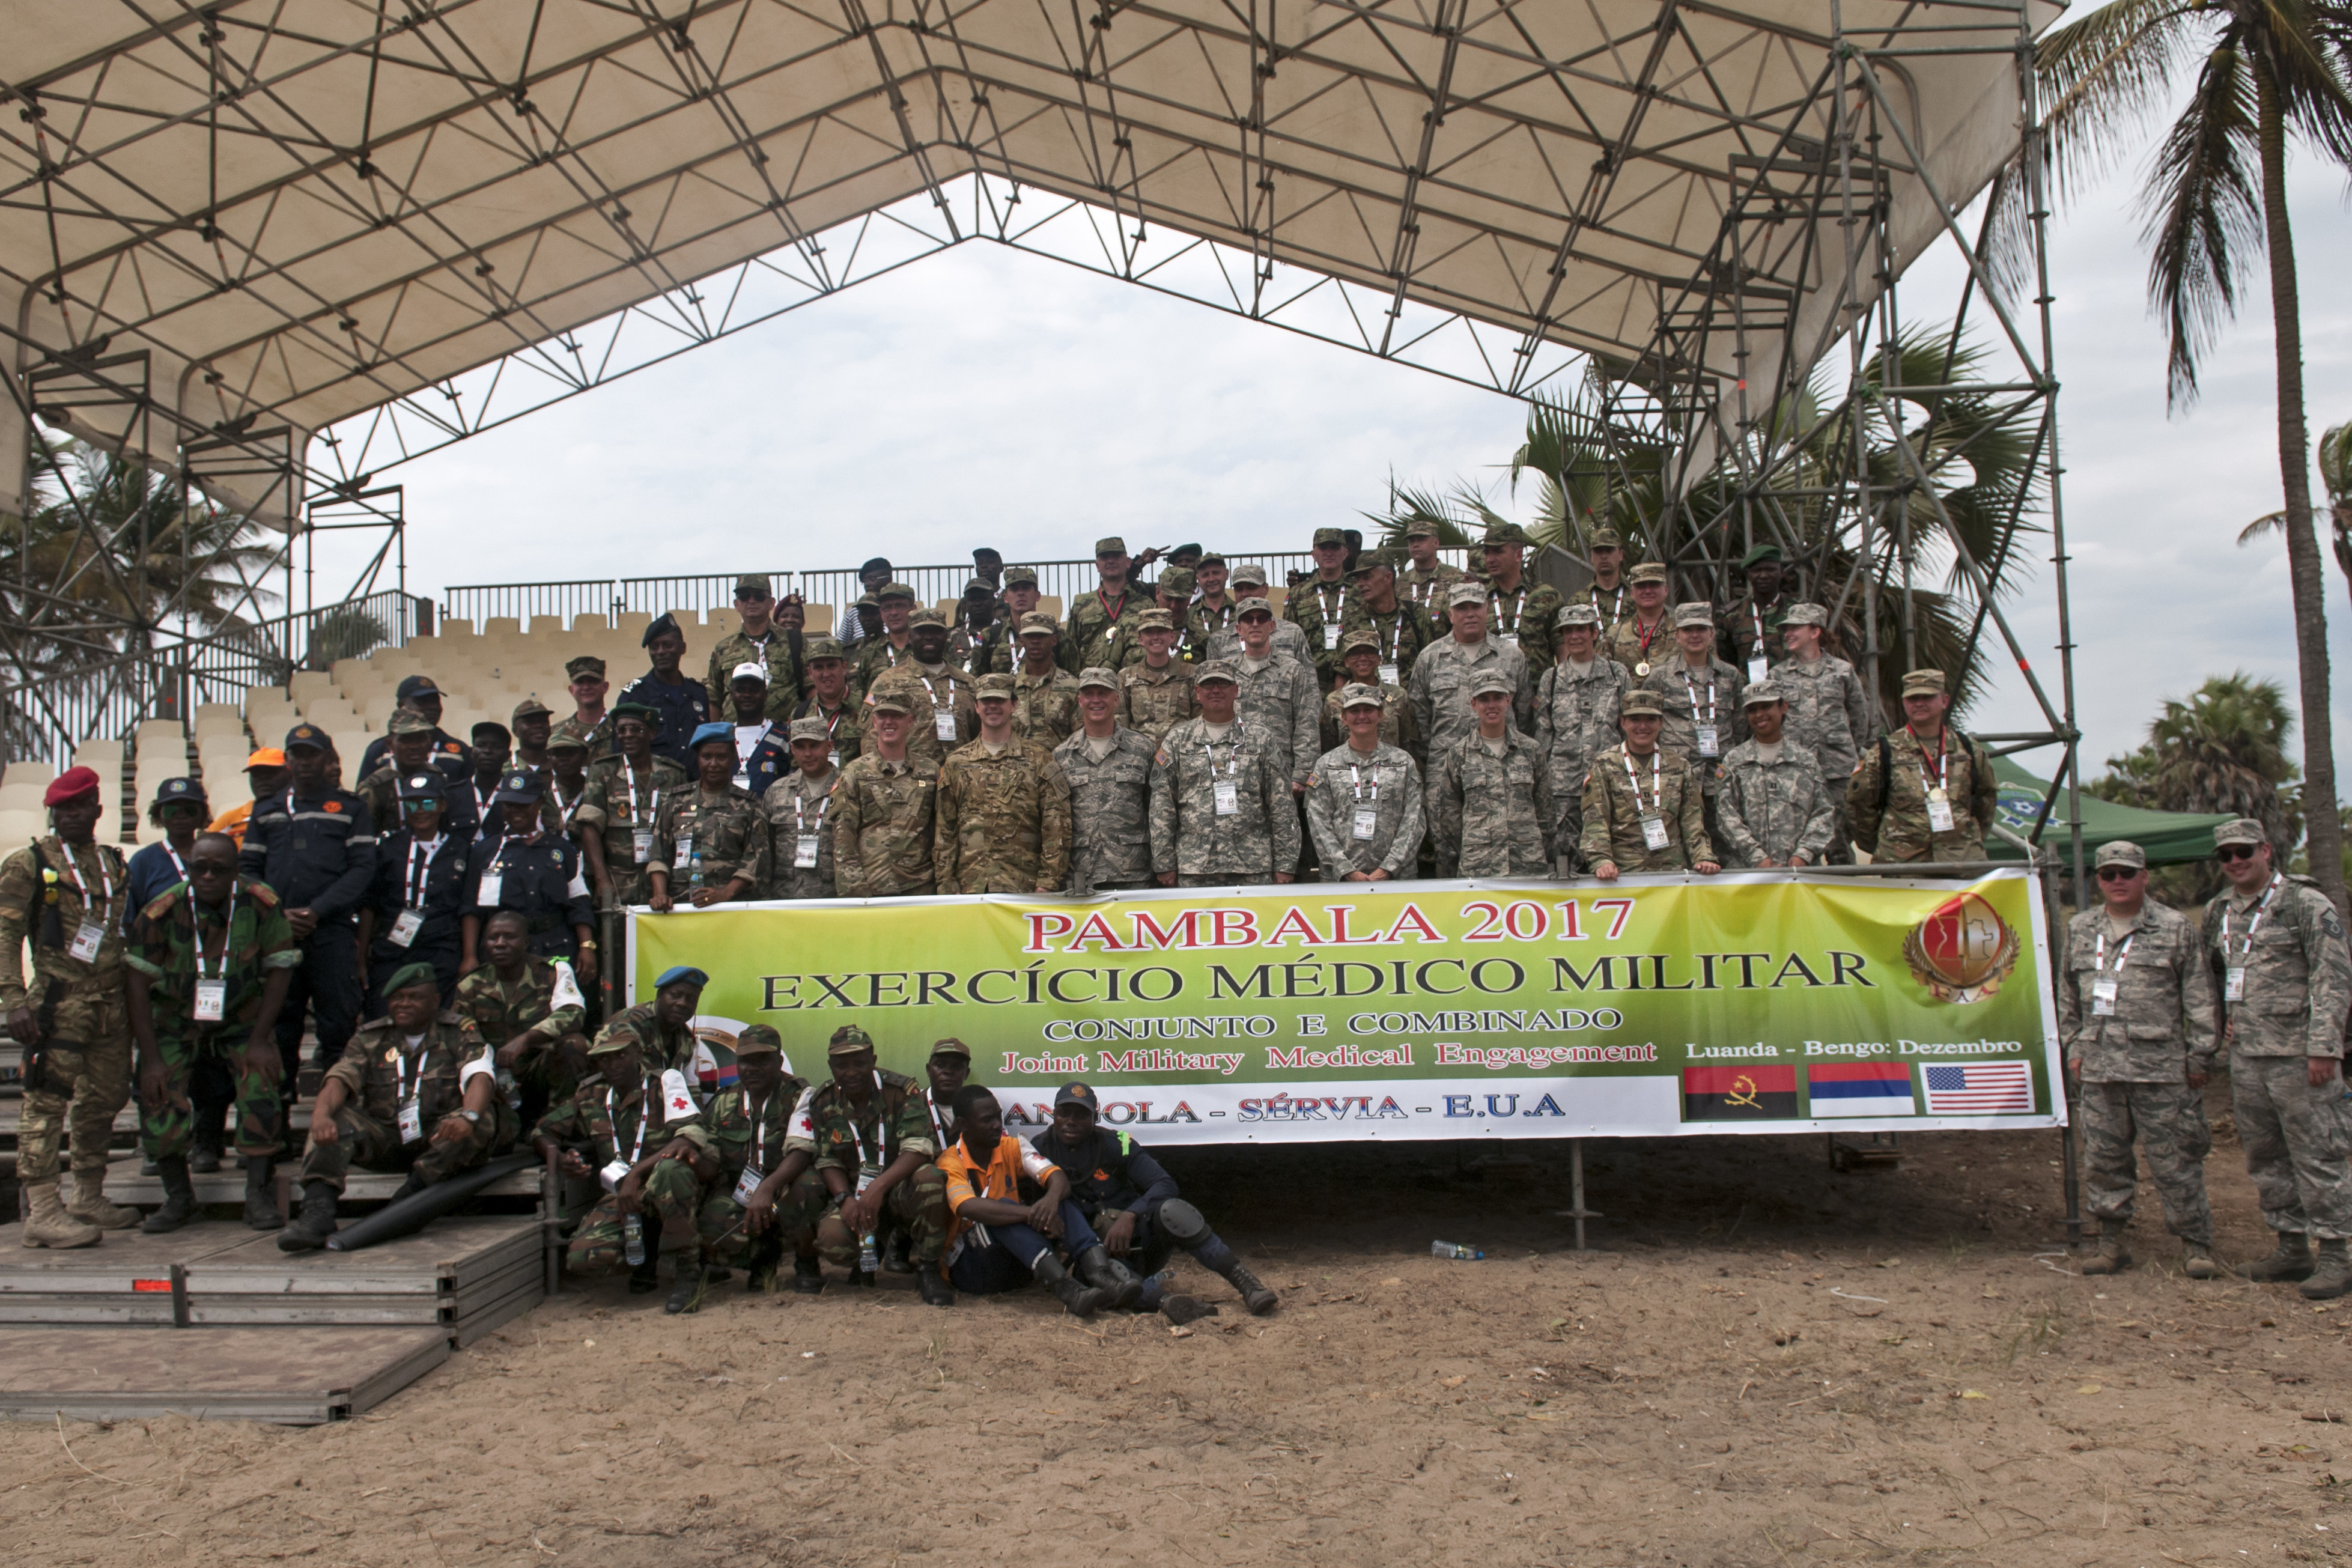 PAMBALA 2017, which took place Dec. 4-15, 2017, in the Republic of Angola, was a two-phase combined medical engagement and marked the first time the U.S. was invited to participate in the exercise, through a trilateral agreement between the Angolan Armed Forces, Serbian Armed Forces and Ohio National Guard. The first-of-its-kind engagement provided mutually beneficial training and experience to Angola, Serbia and the ONG and helped to forge some lasting friendships. (Ohio National Guard photo by Staff Sgt. Wendy Kuhn)